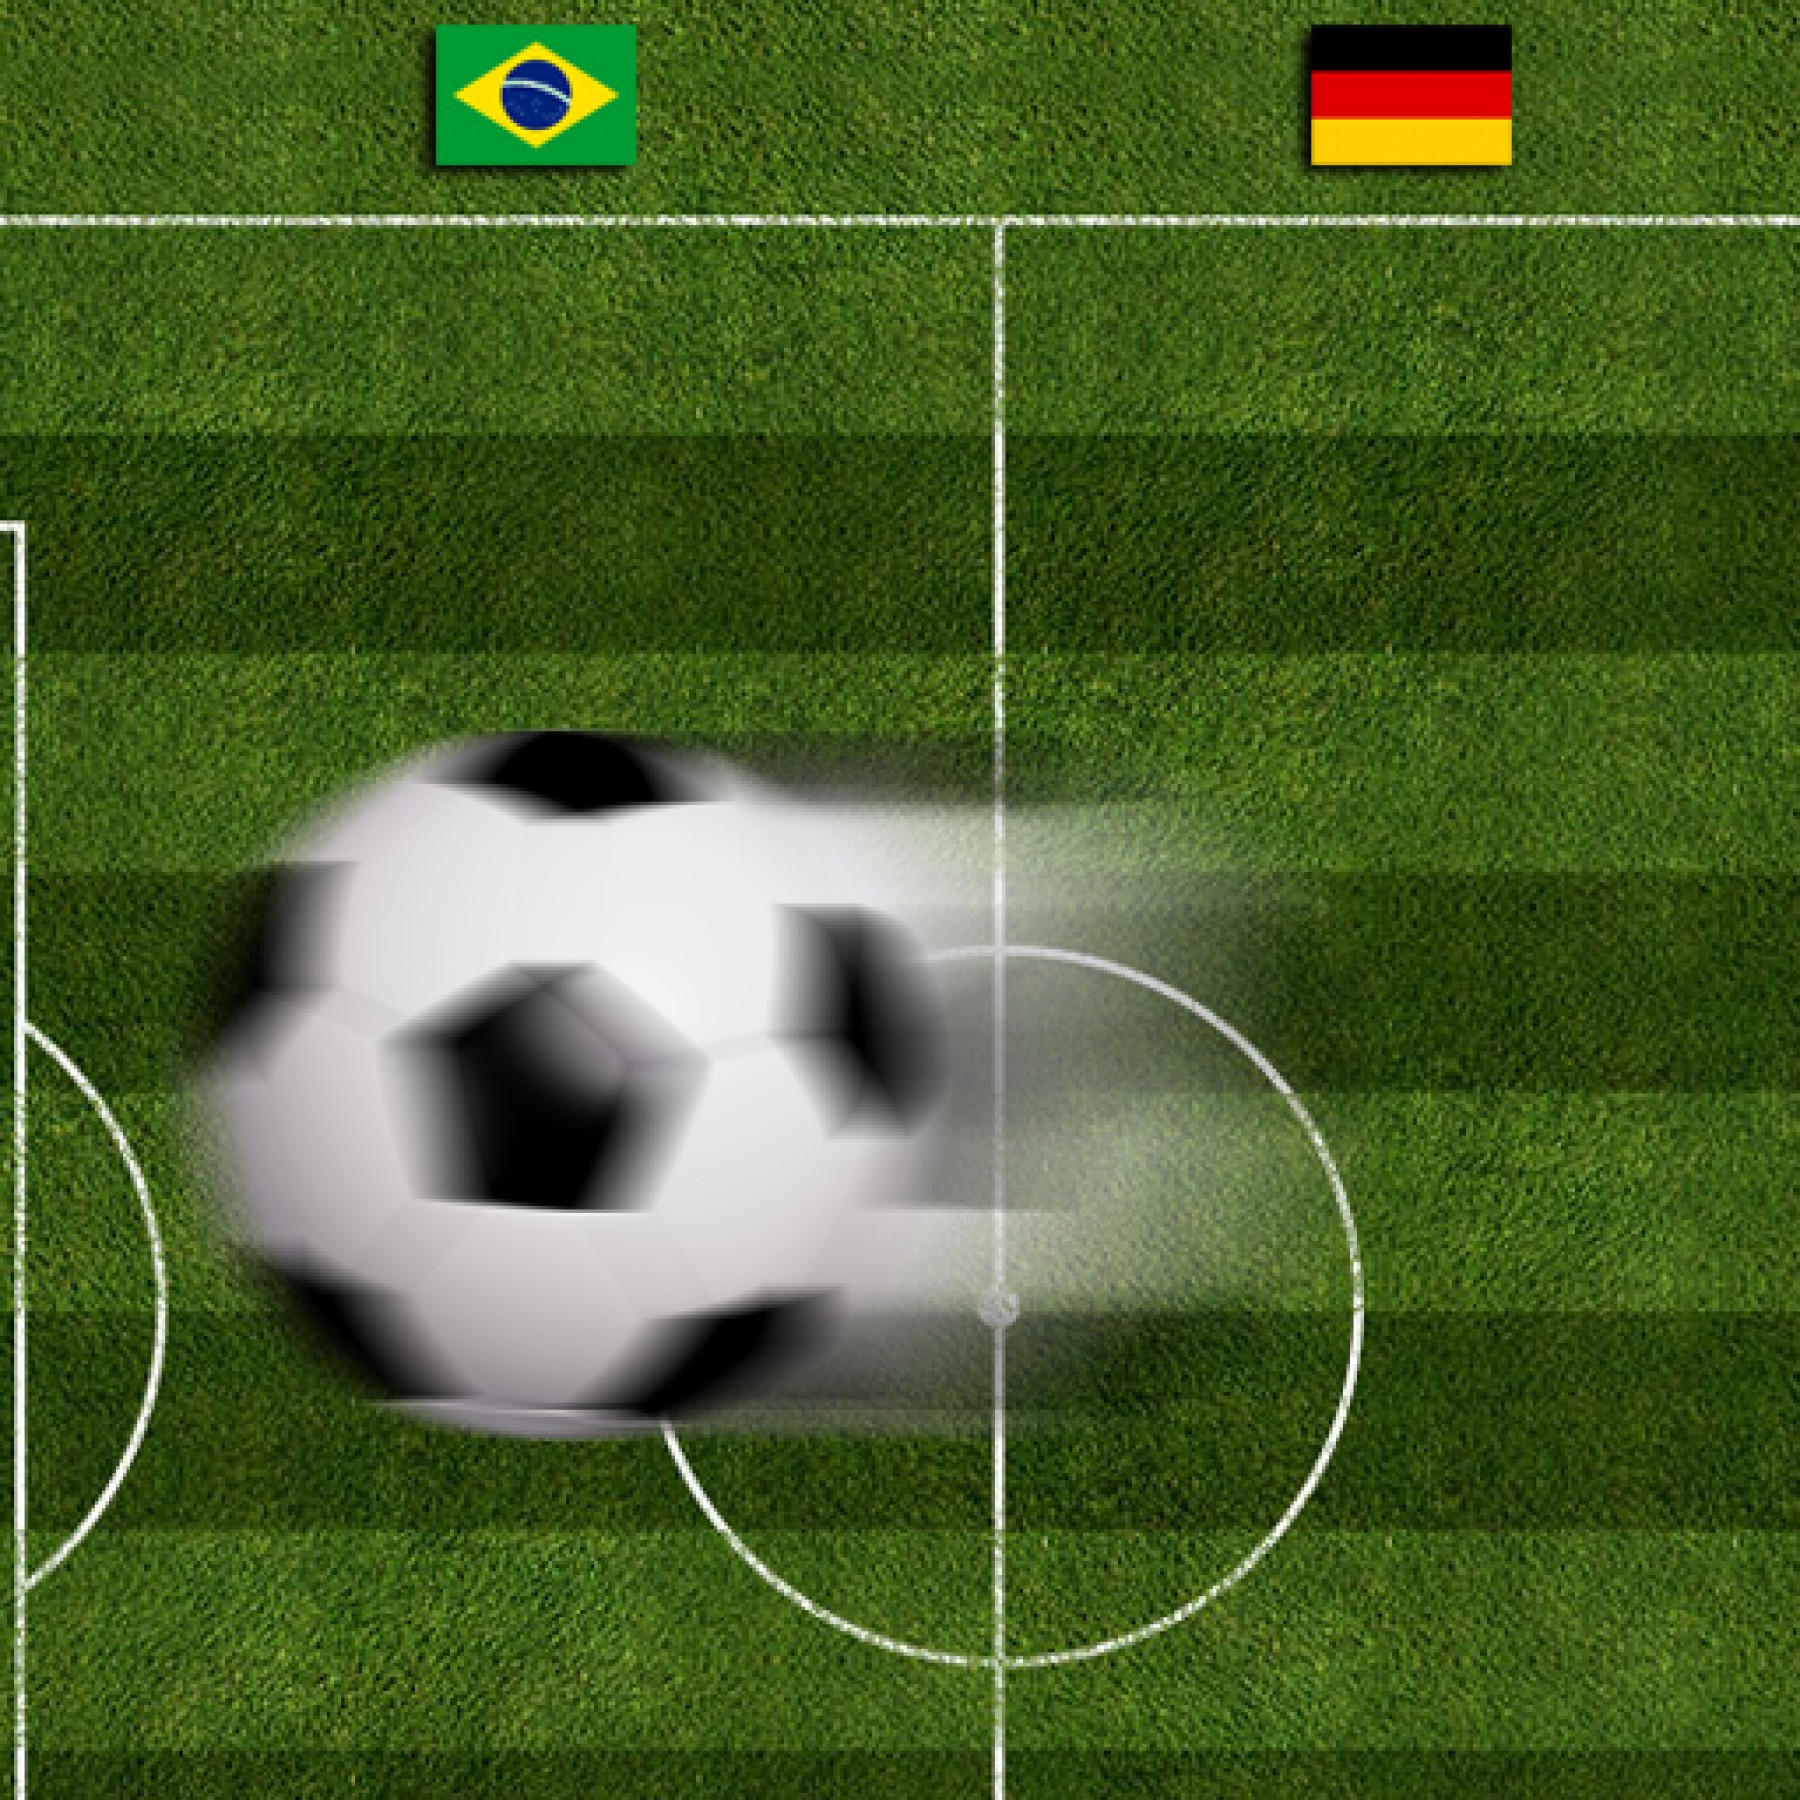 brazil-v-germany-games-playtime-active-kids-sports-adults-main-location1